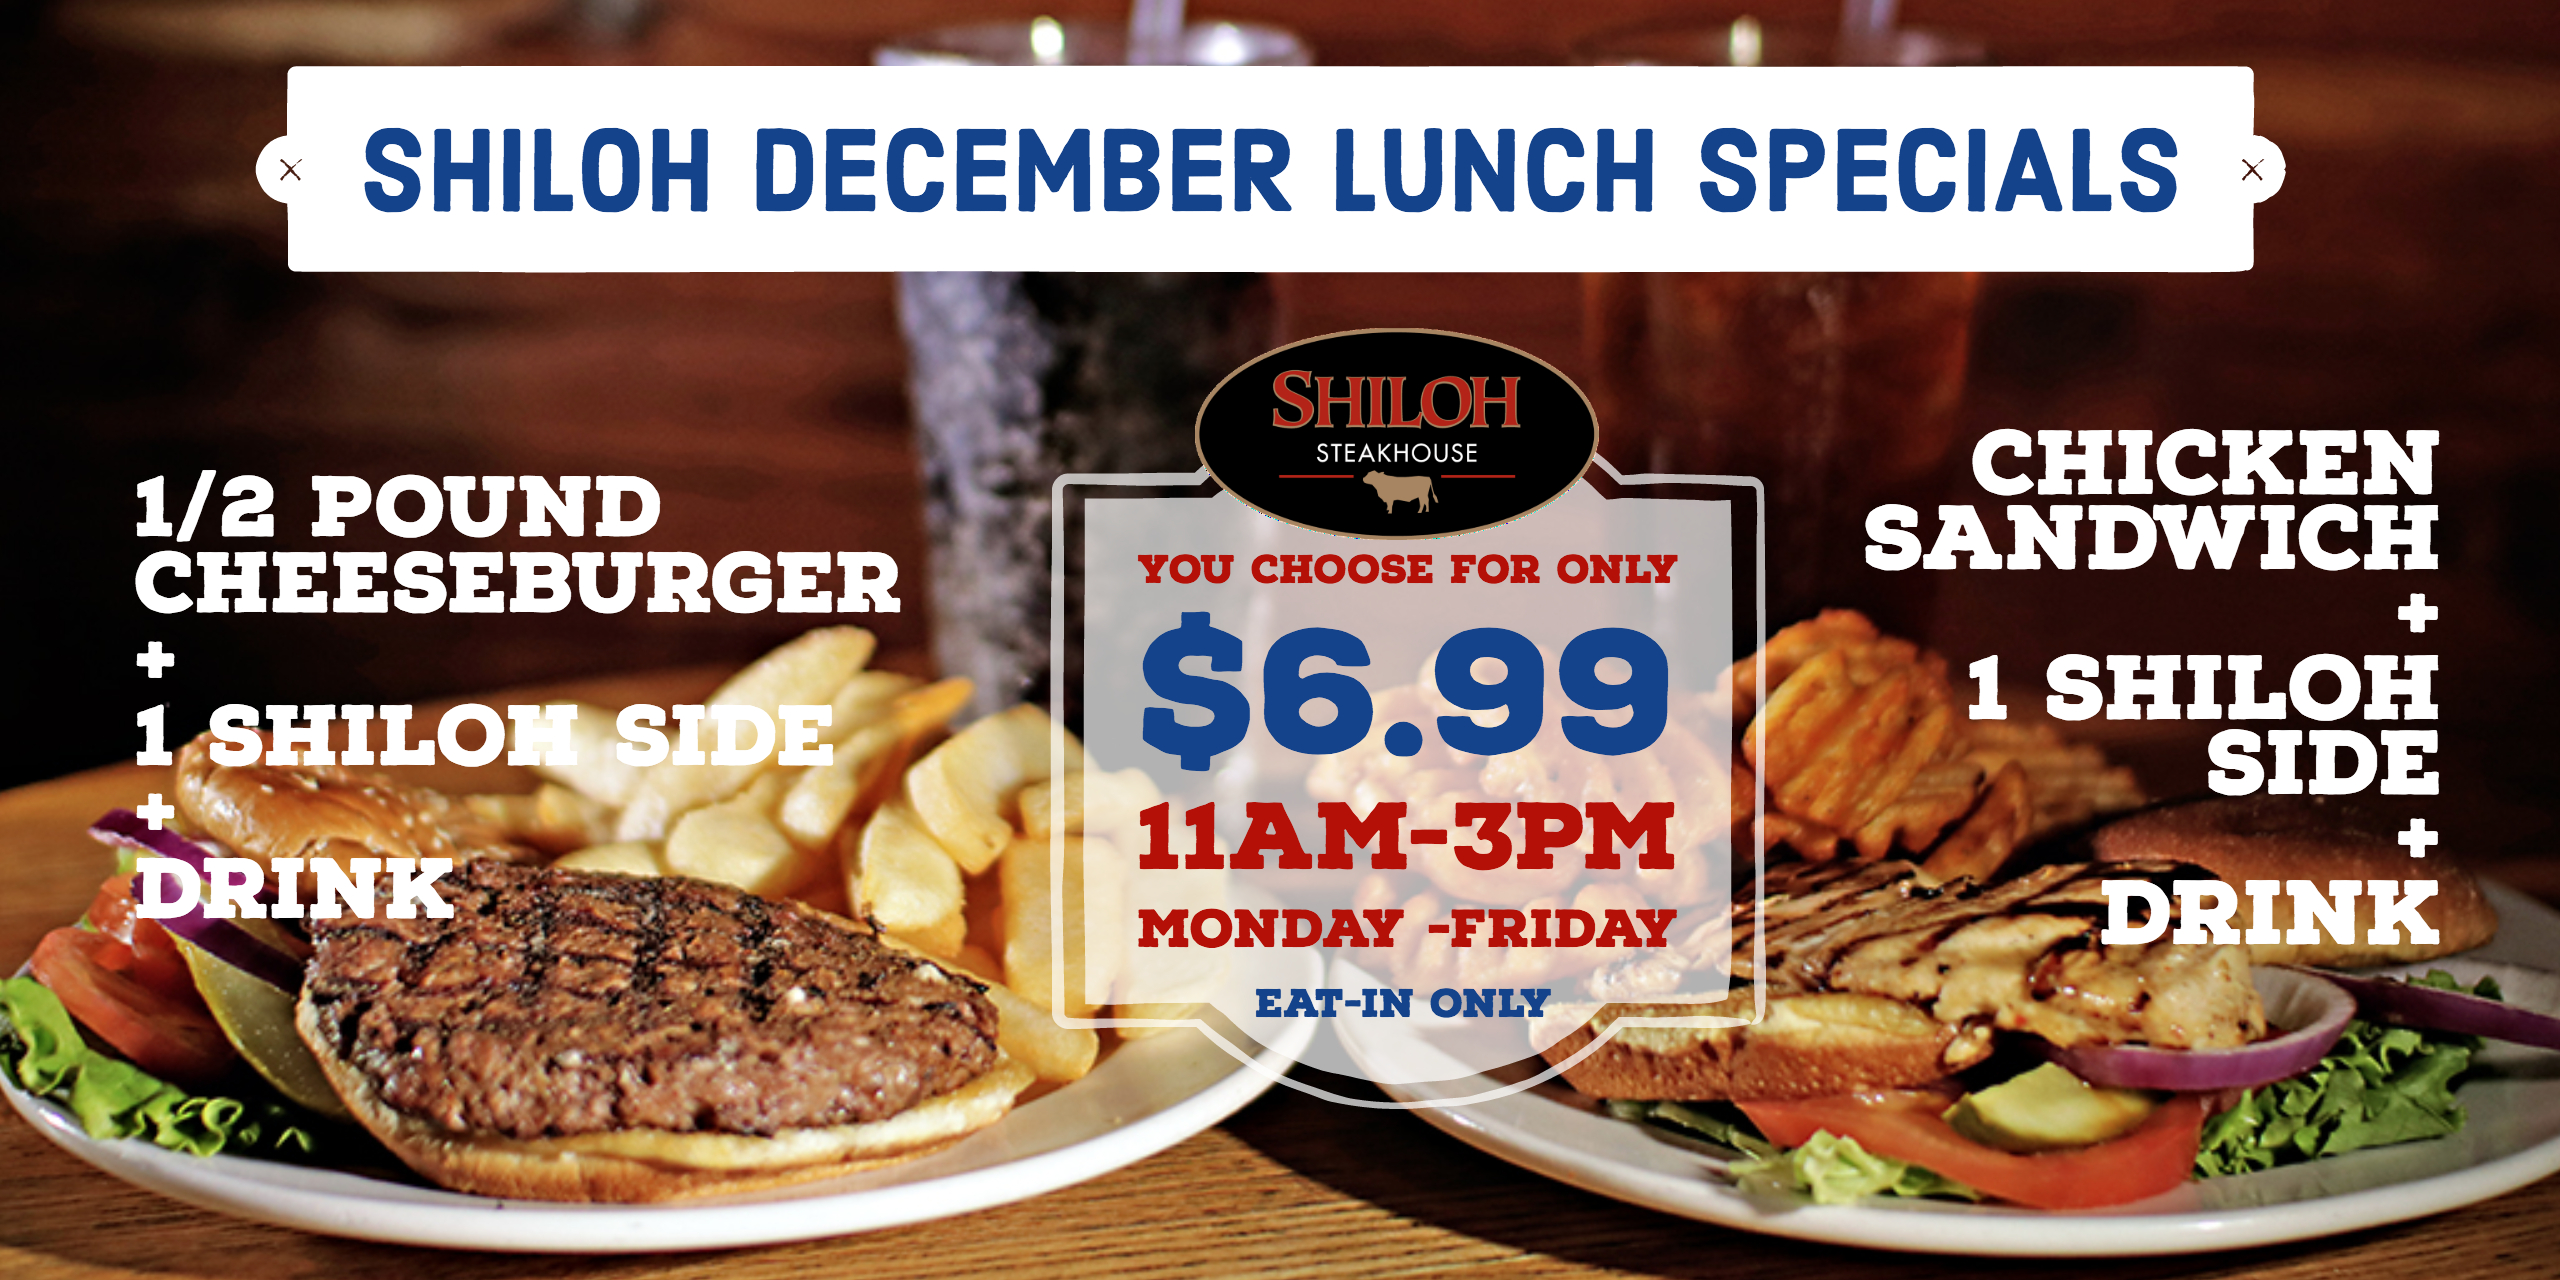 December Lunch Special – $6.99